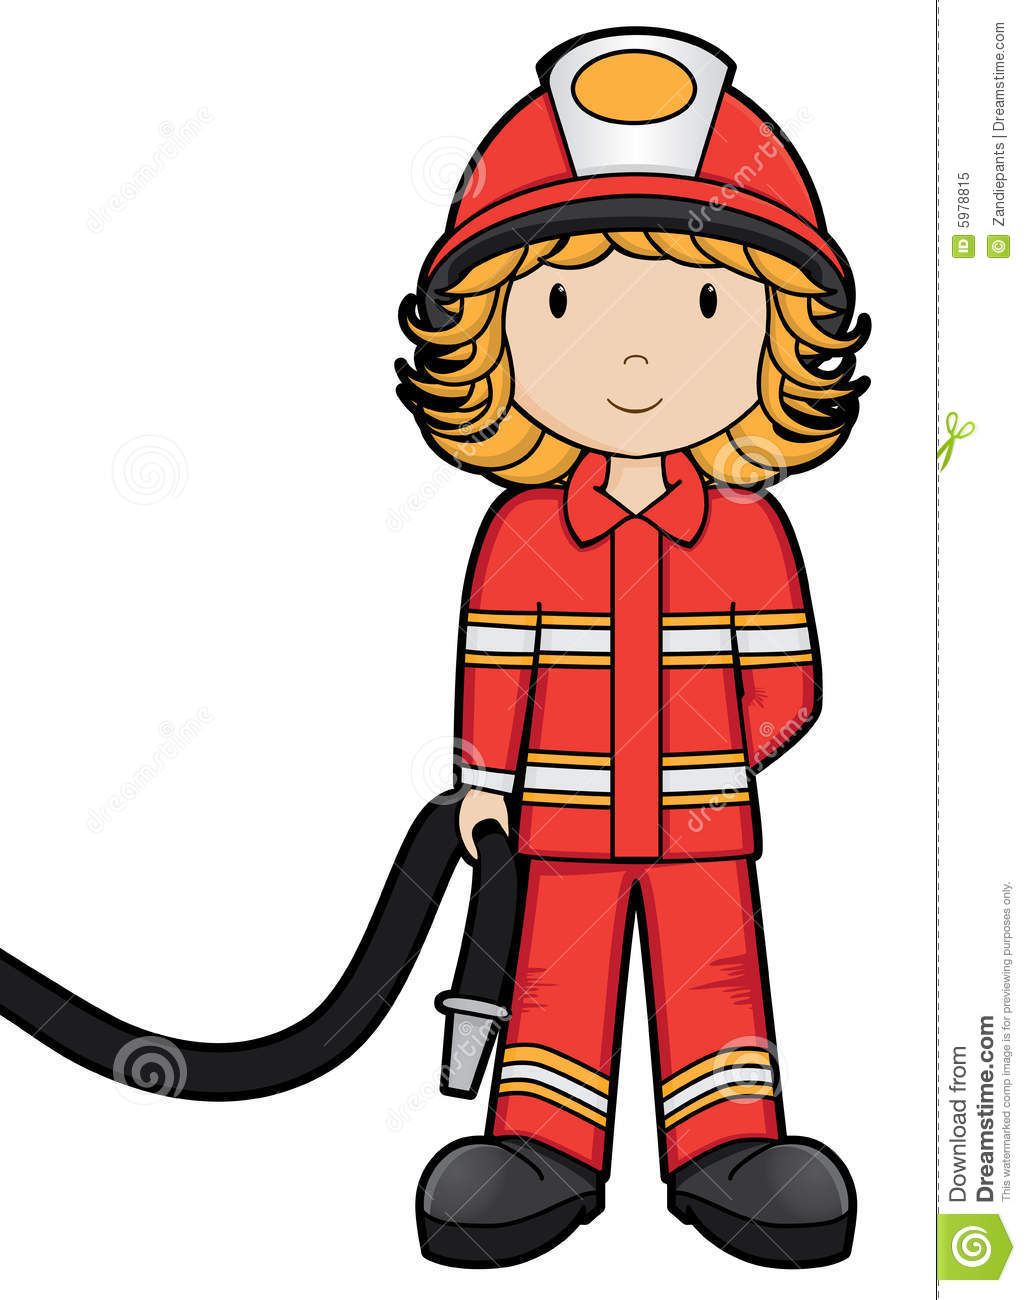 Girl On Fire Clipart - Clipart Kid